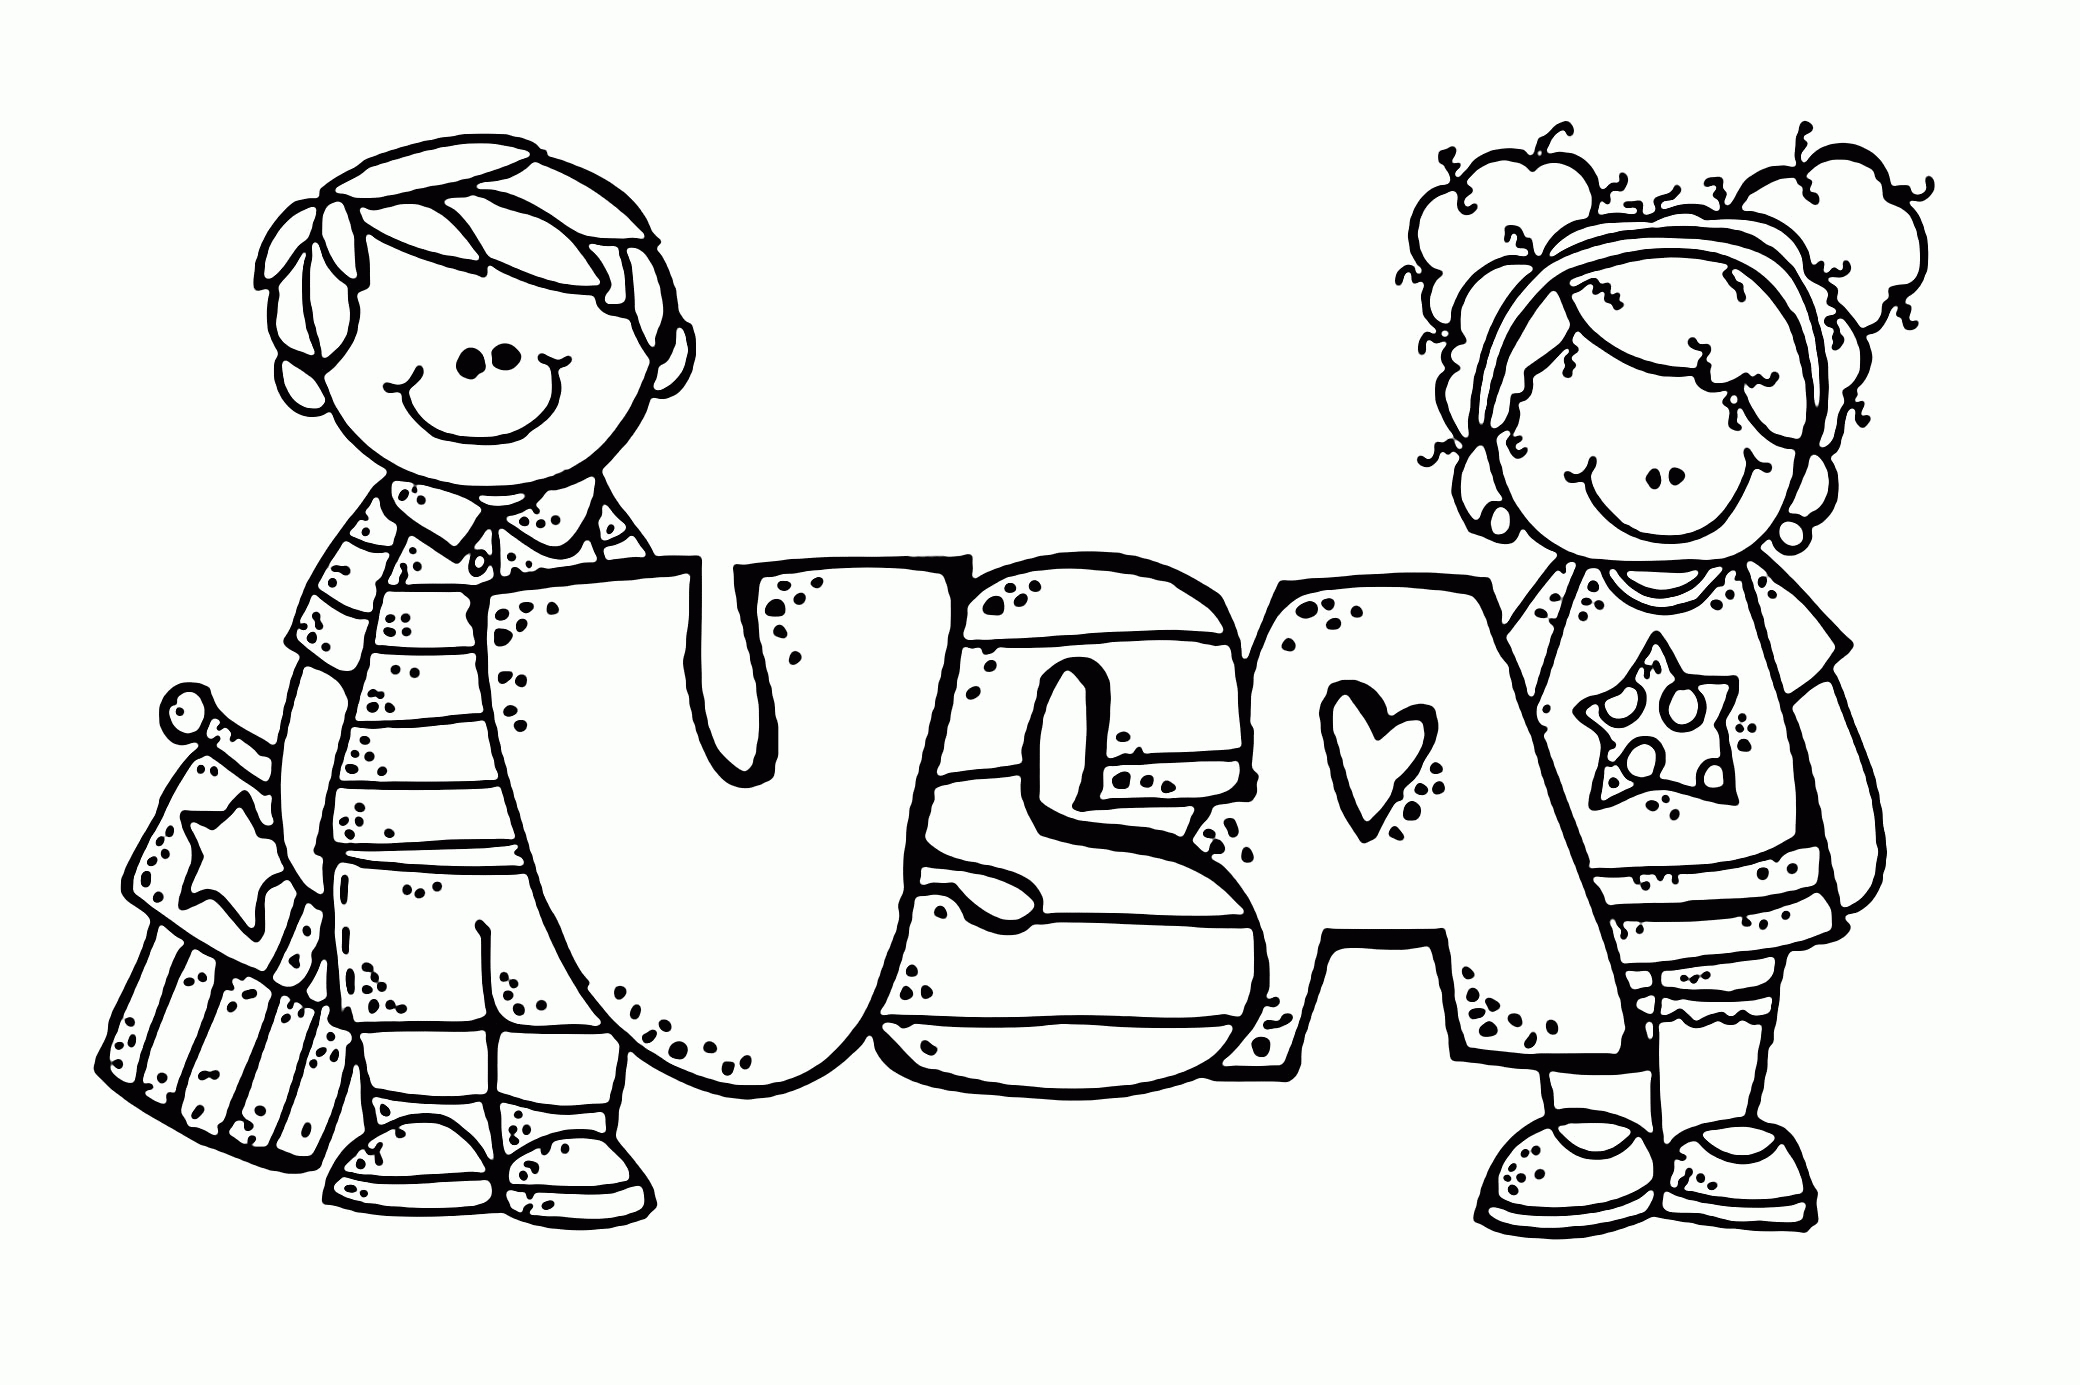 Usa Coloring Pages - Usa Coloring Page Az Coloring Pages